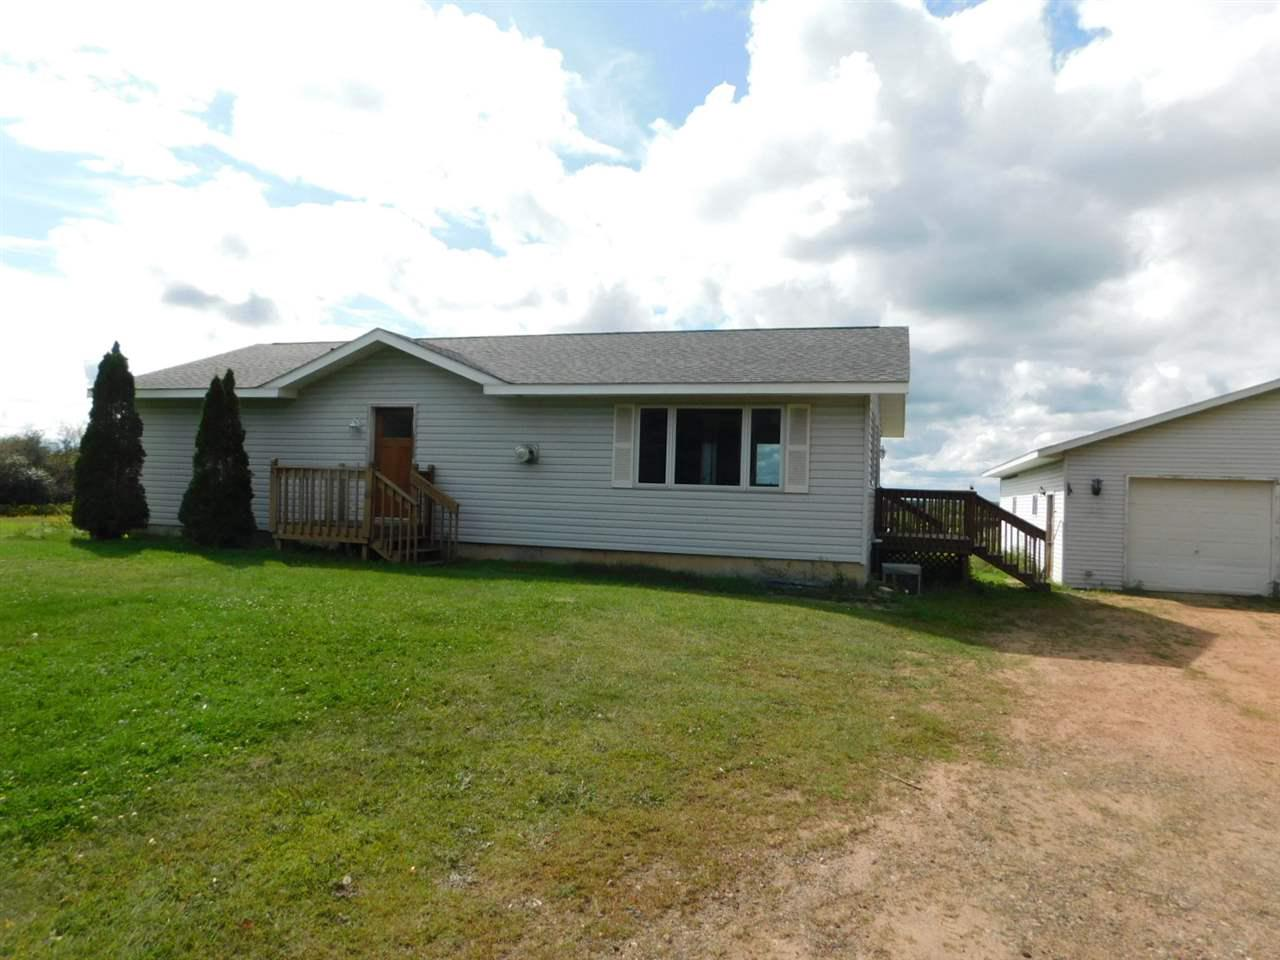 17 year old 3 bedroom, 2 bath home, with gas fireplace in living room, deck off dining and main floor laundry. Full basement, with high ceiling for potential of finishing. Double deep garage, all set on 20 acres, partially wooded, east of Merrill.  Seller will allow for a new roof in the price.